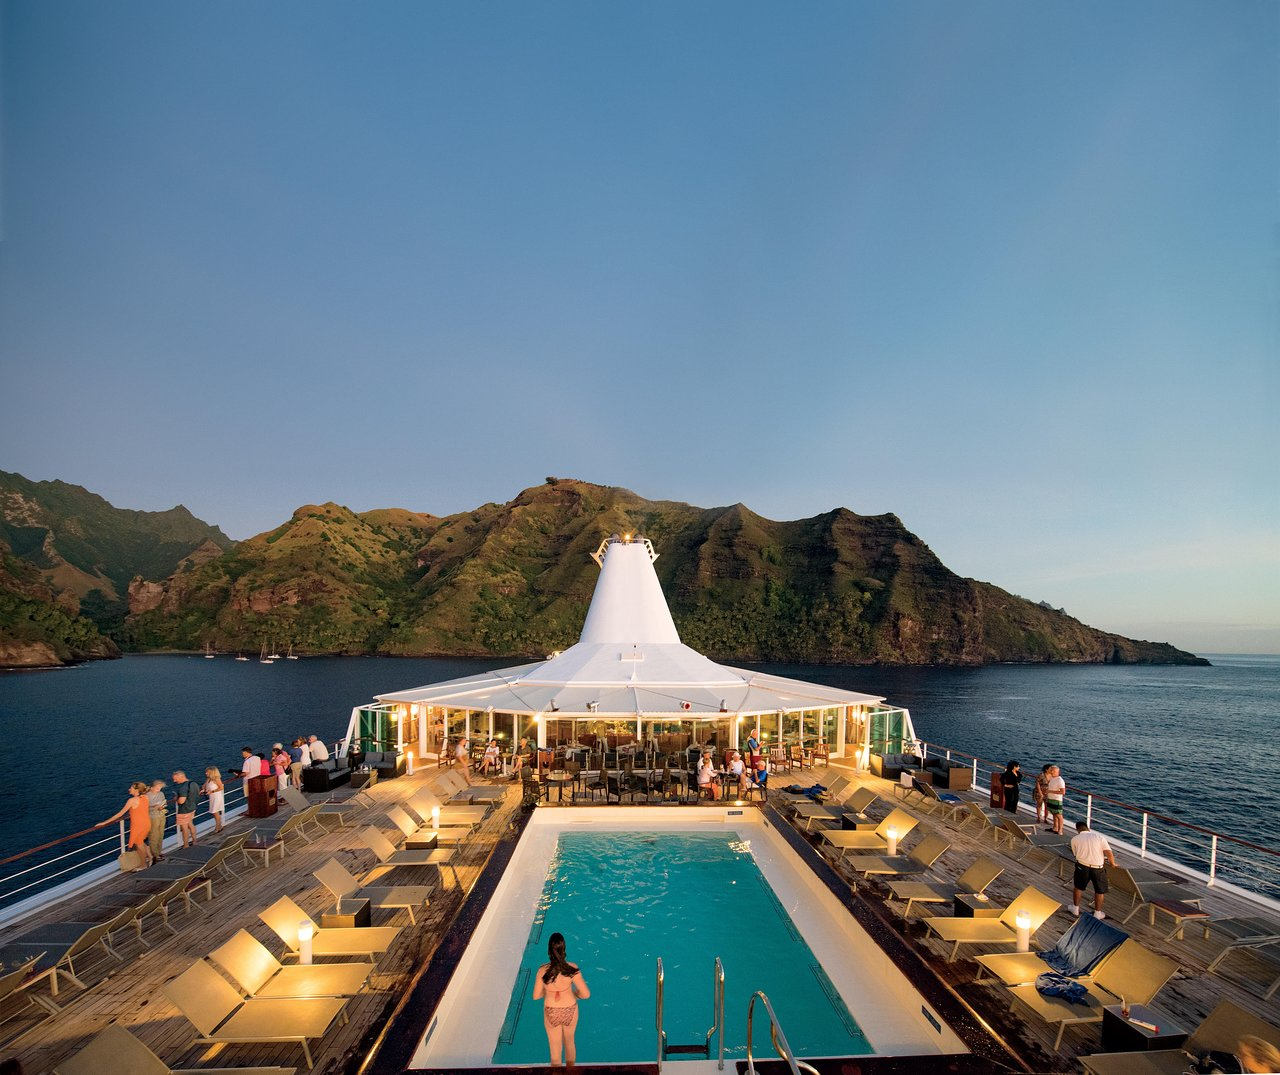 Paul Gauguin Deck Plans Reviews Pictures Tripadvisor